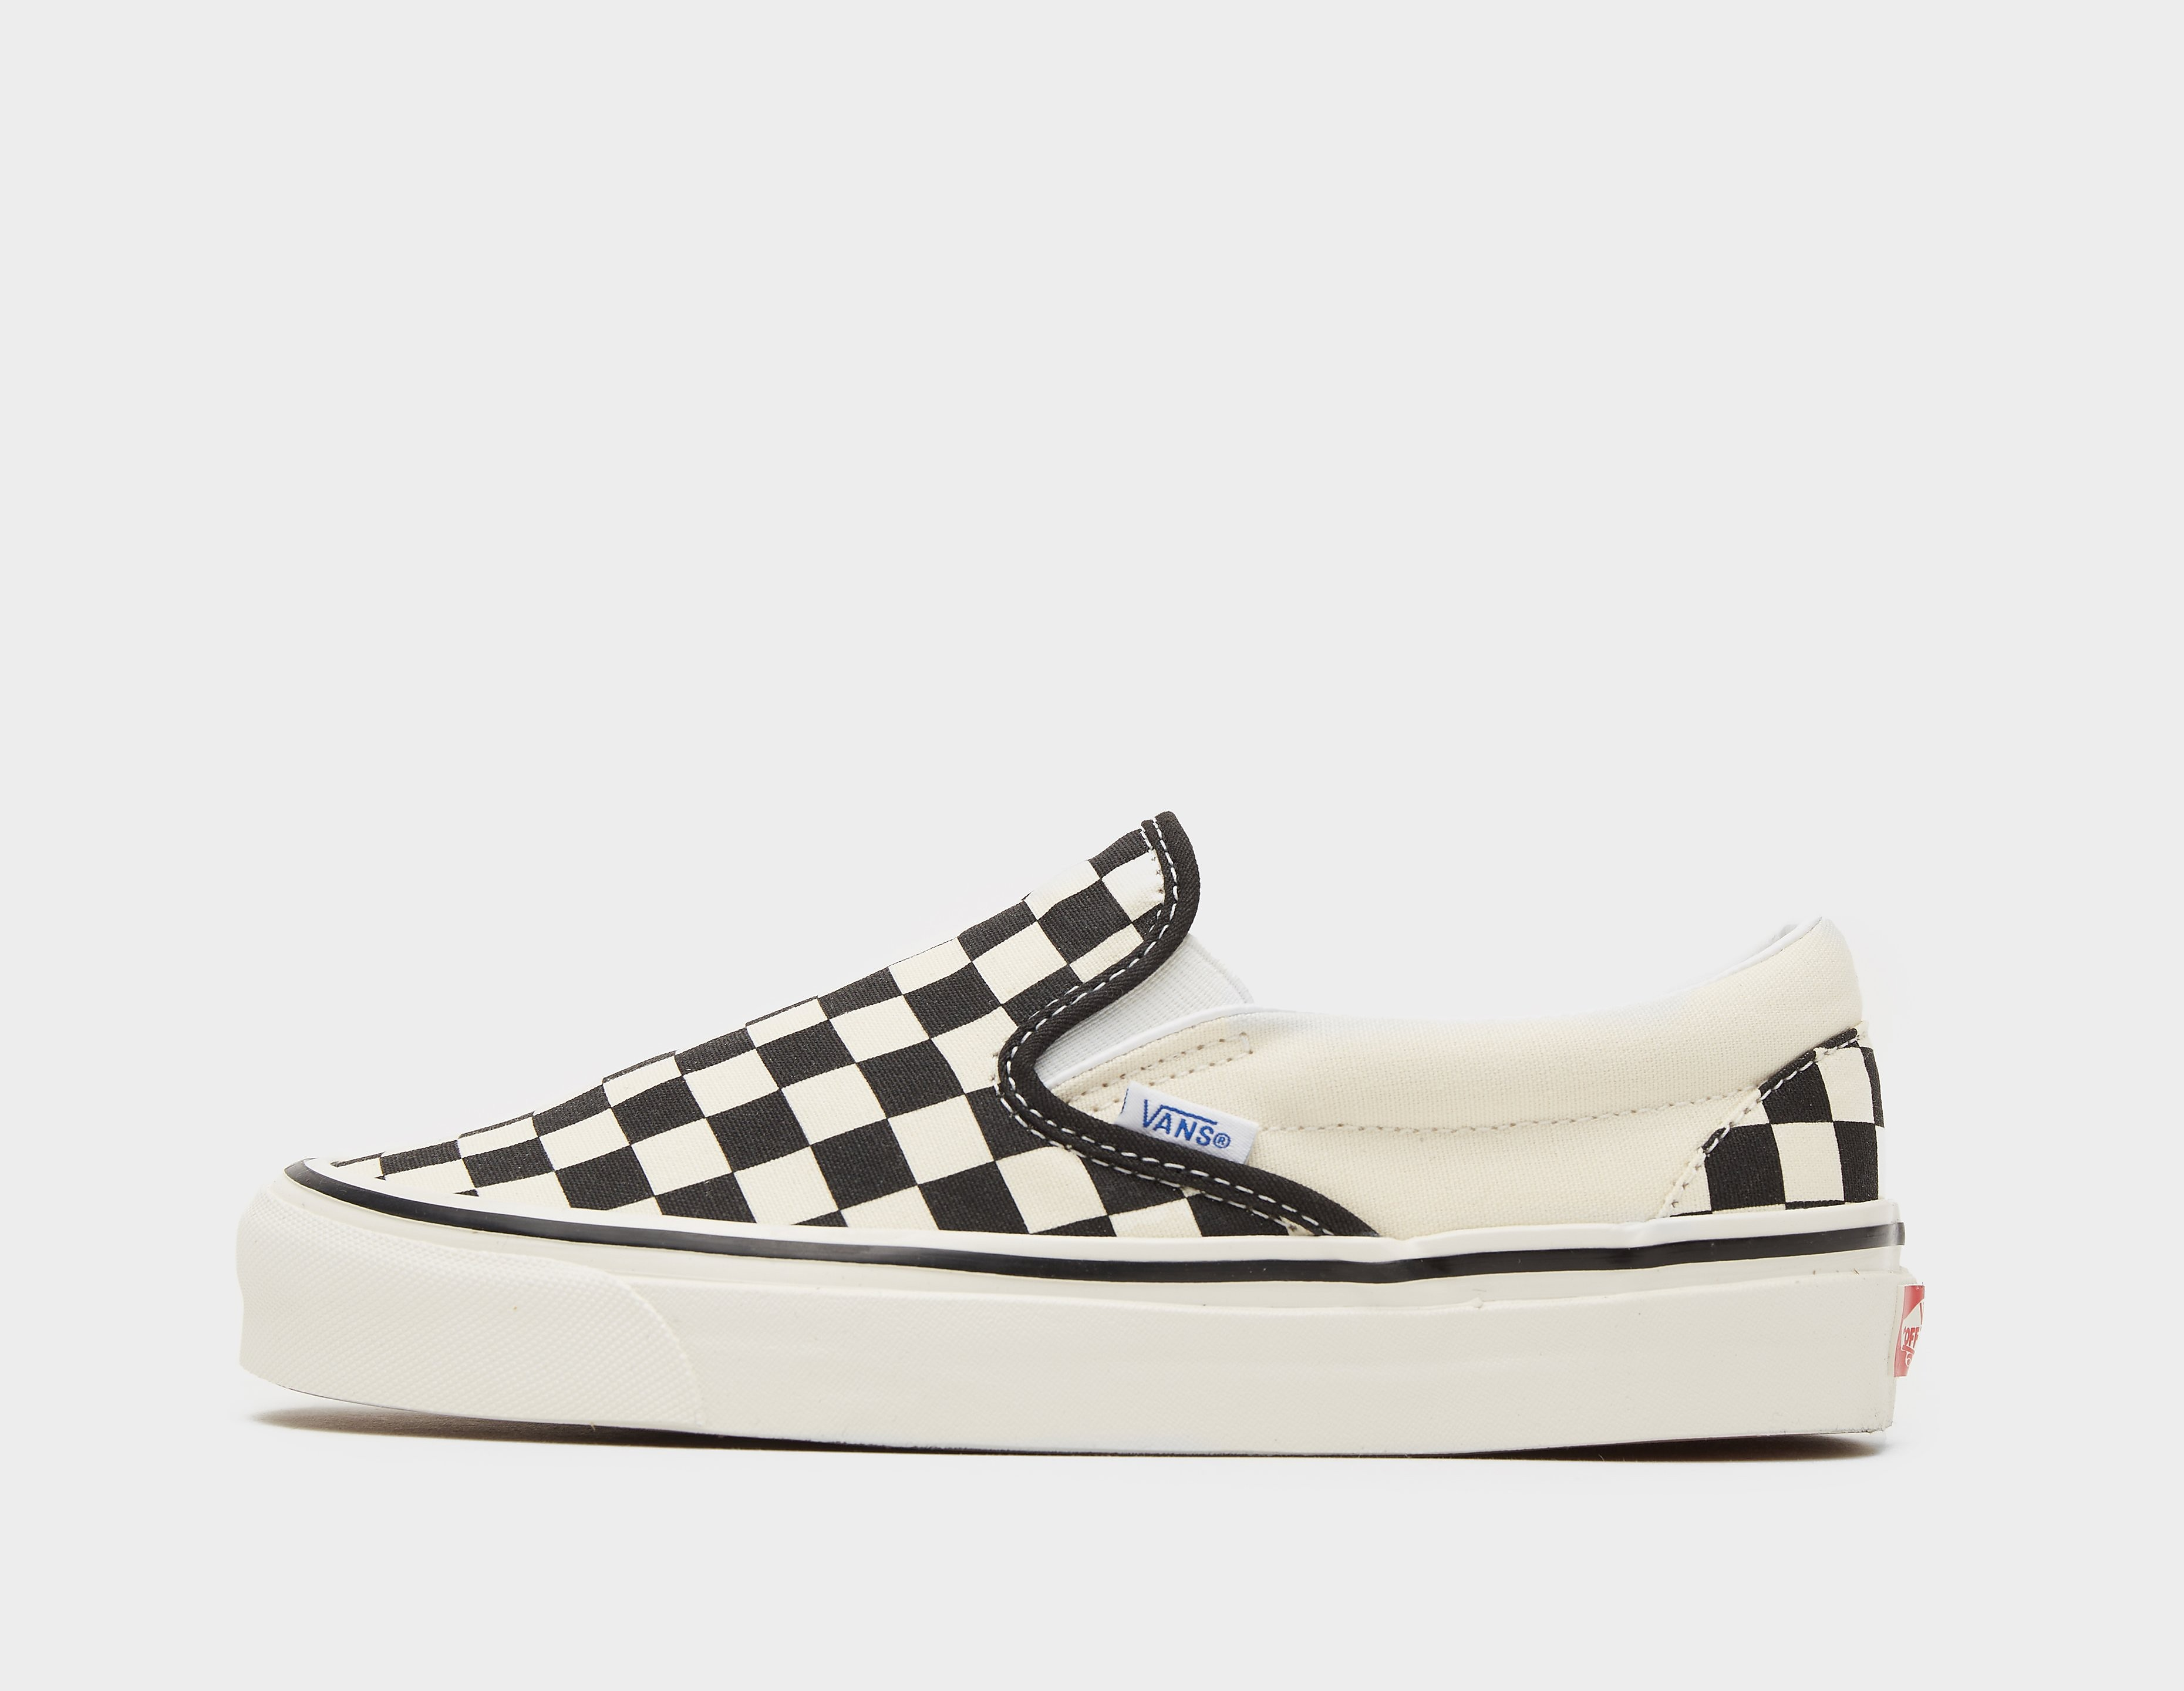 Vans Anaheim Checkboard Slip-On Women's